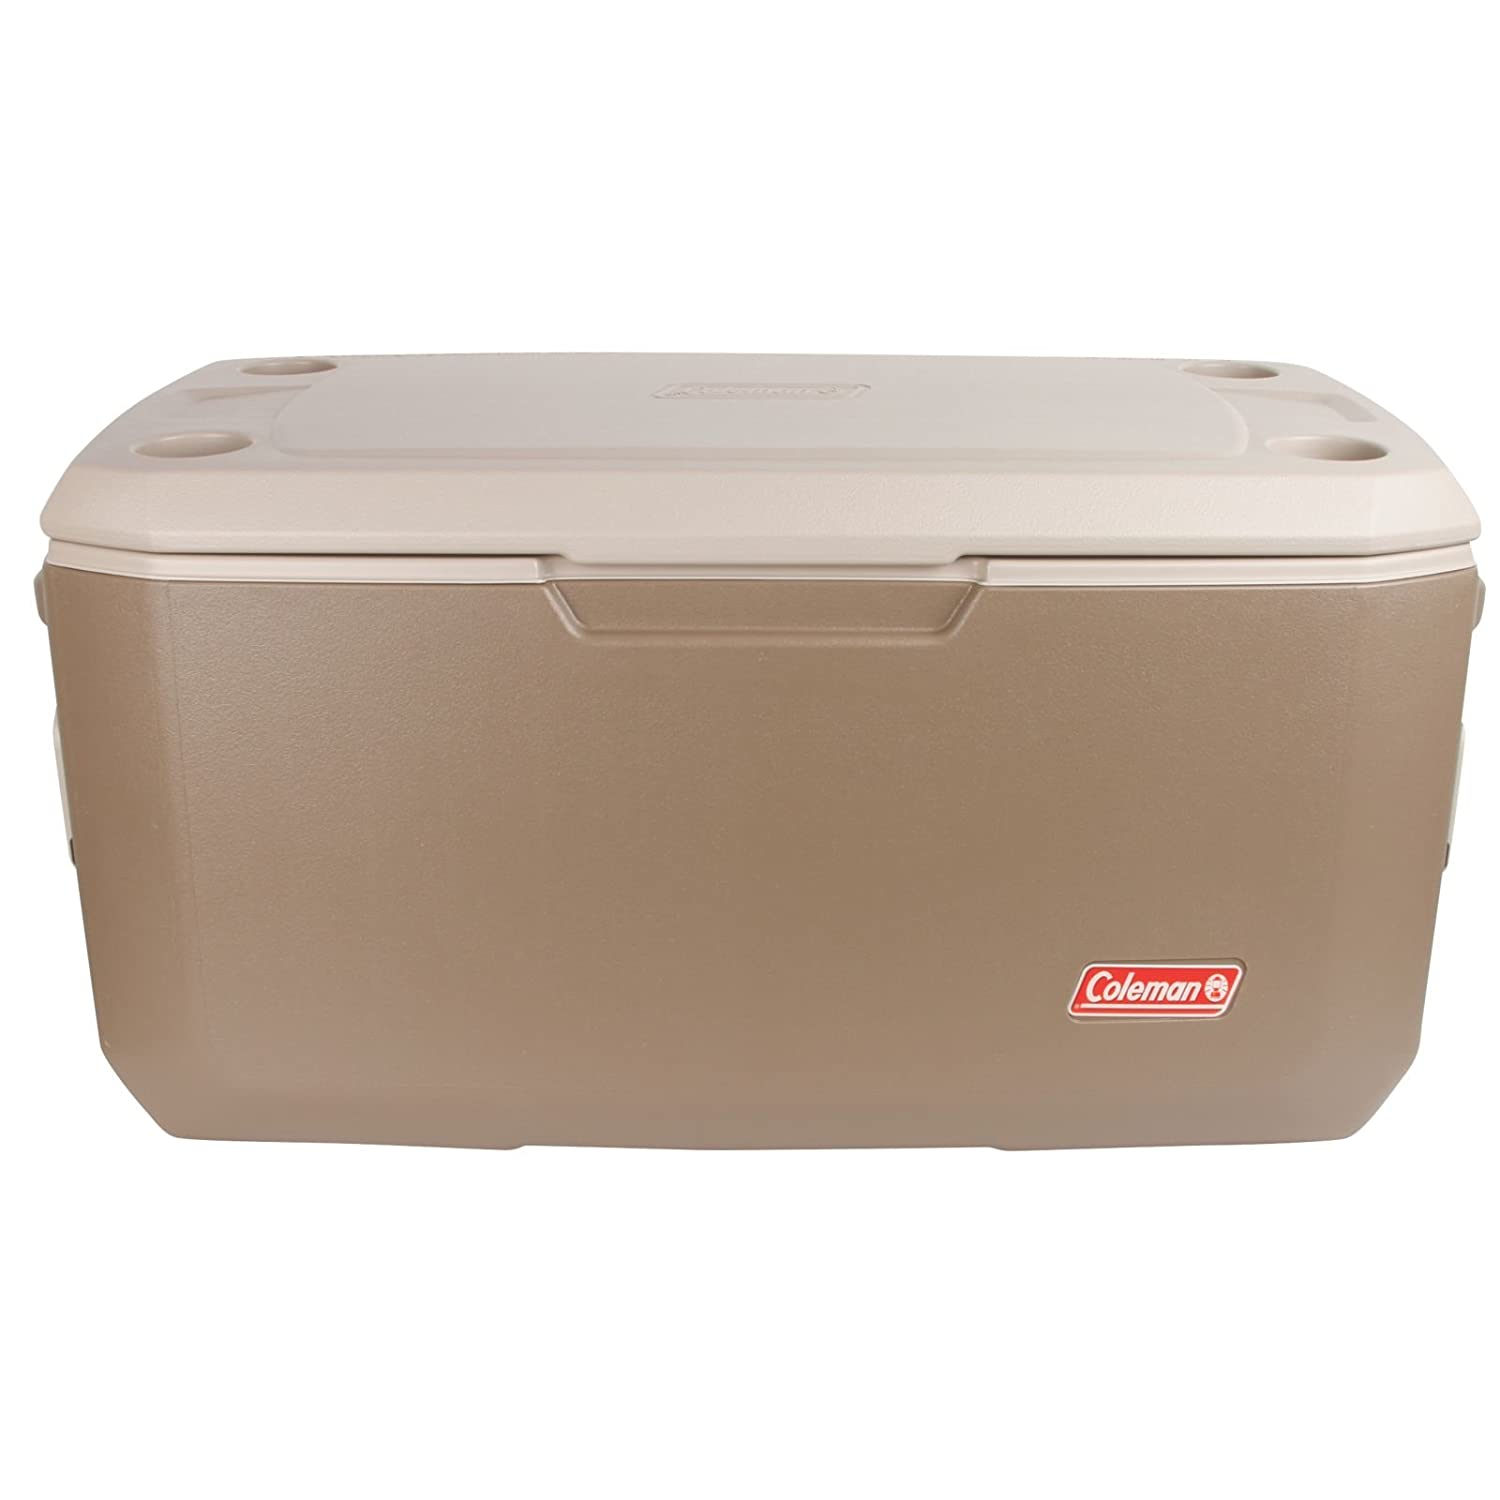 Best Coleman Xtreme 6 Cooler, 120 Quart